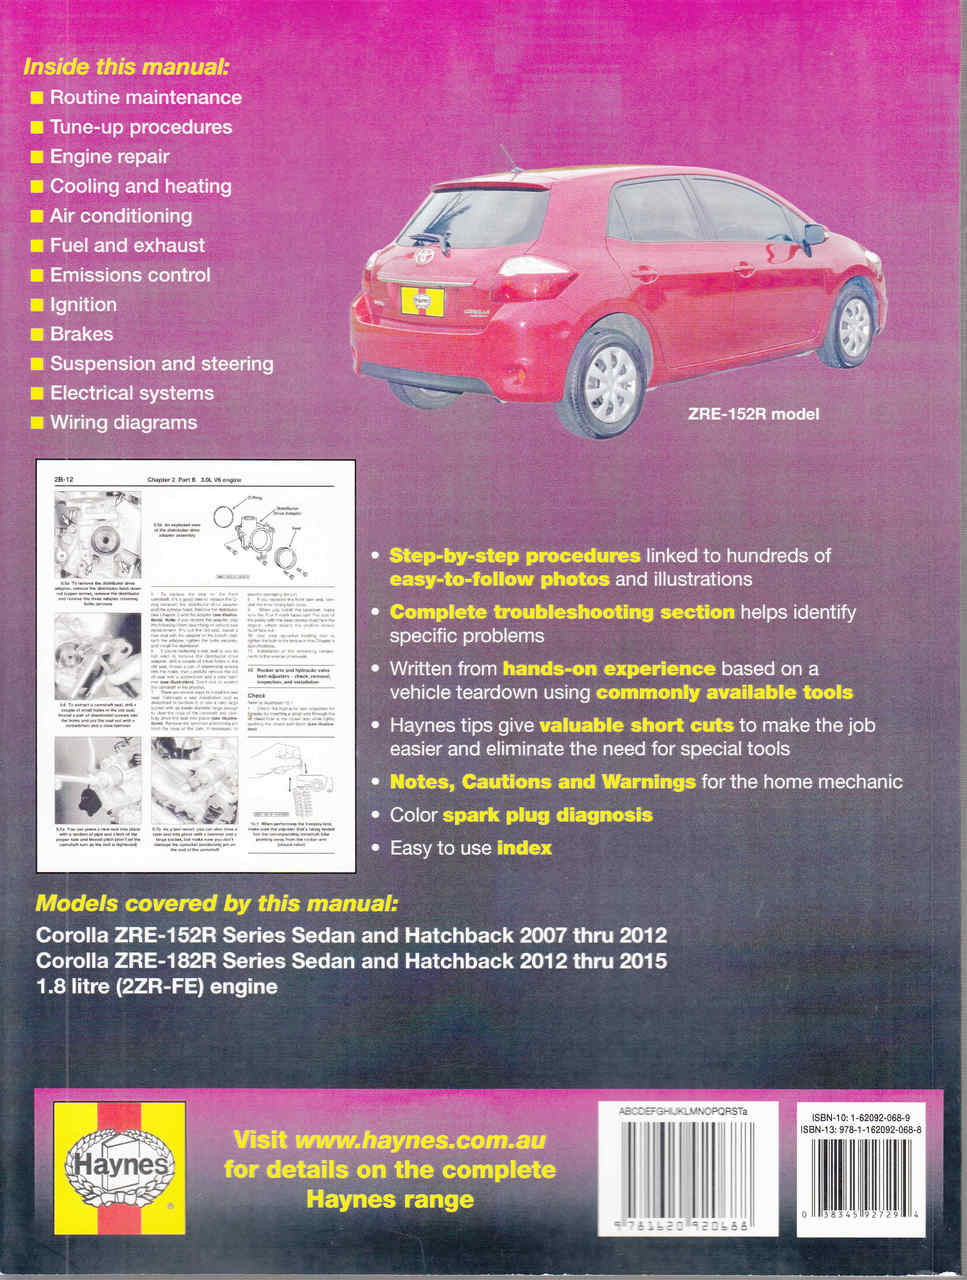 Toyota Corolla 1 8 litre engine ZRE-152R & ZRE-182R 2007 - 2015 Workshop  Manual